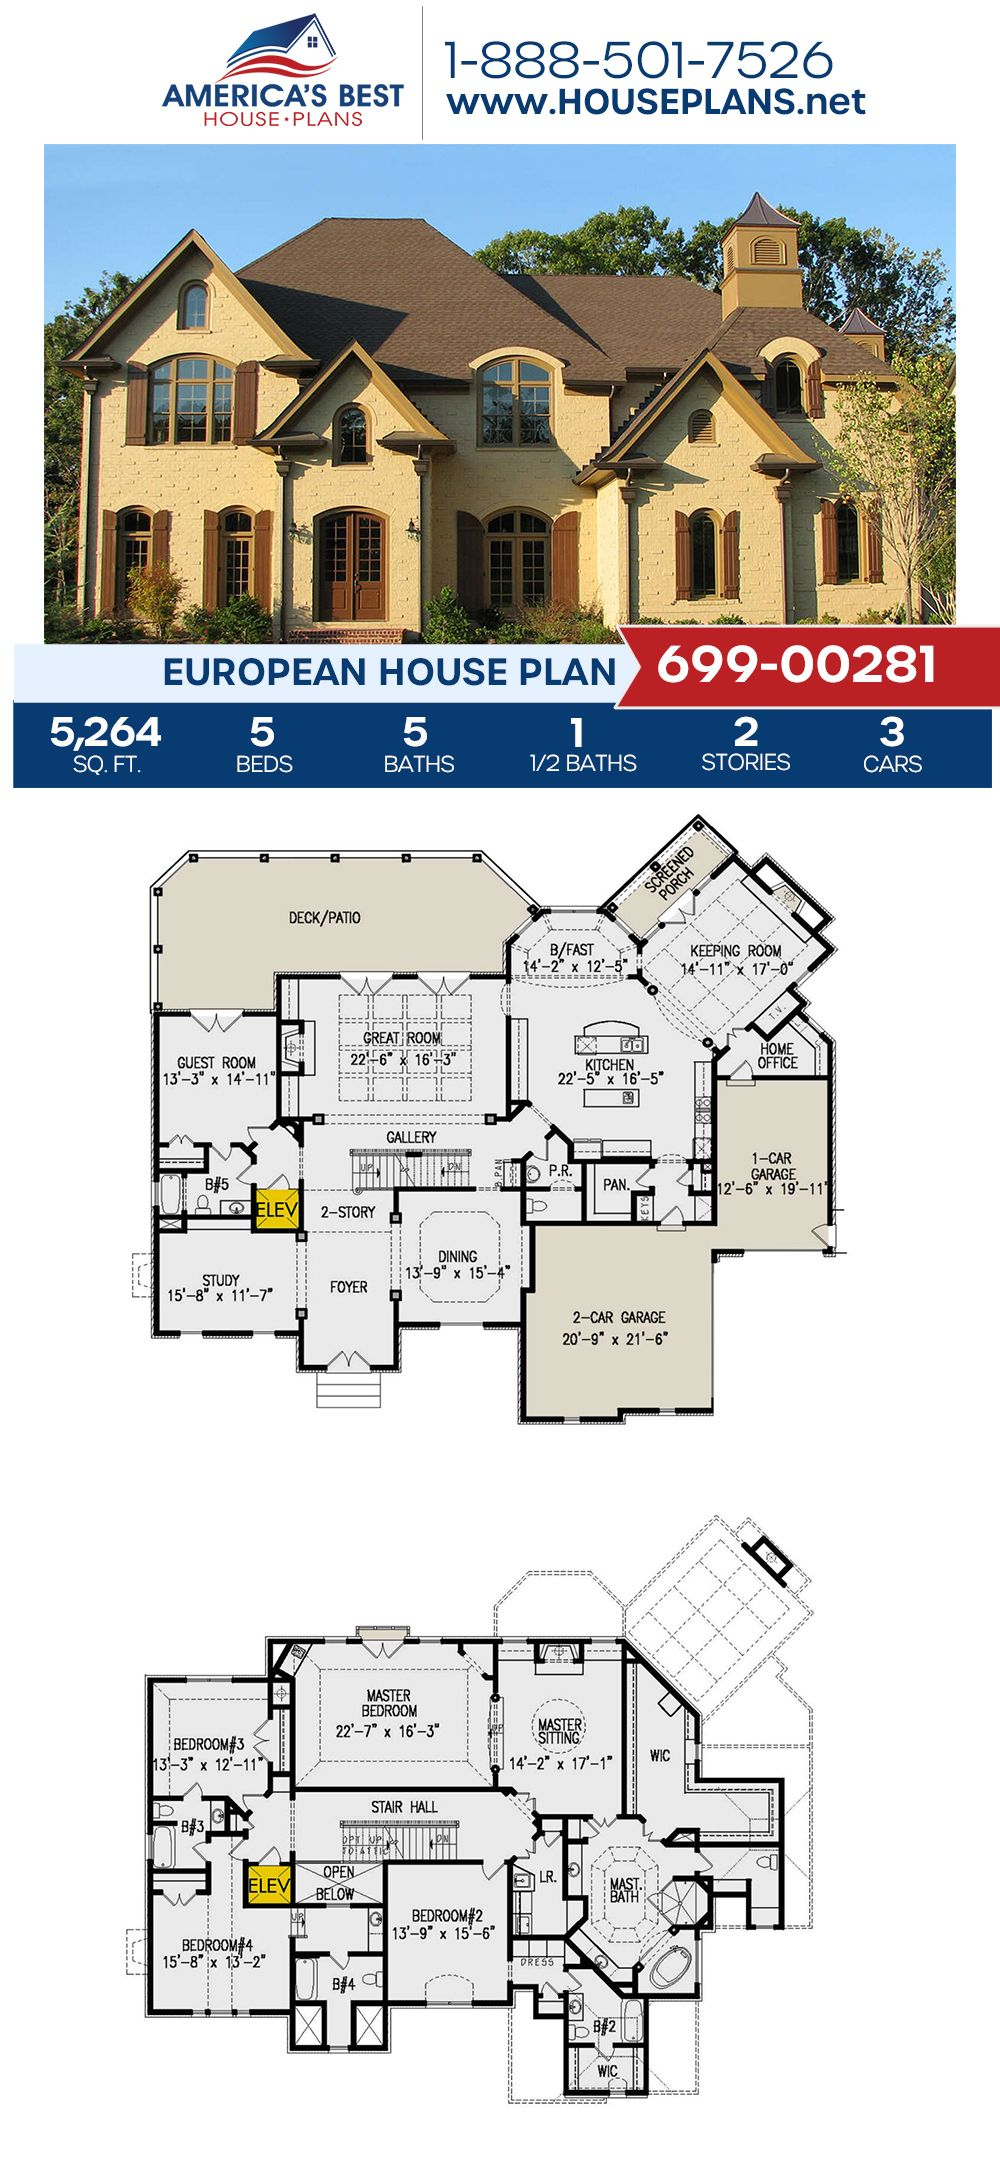 House Plan 699 00281 European Plan 5 264 Square Feet 5 Bedrooms 5 5 Bathrooms In 2020 House Plans Dream House Plans European Plan